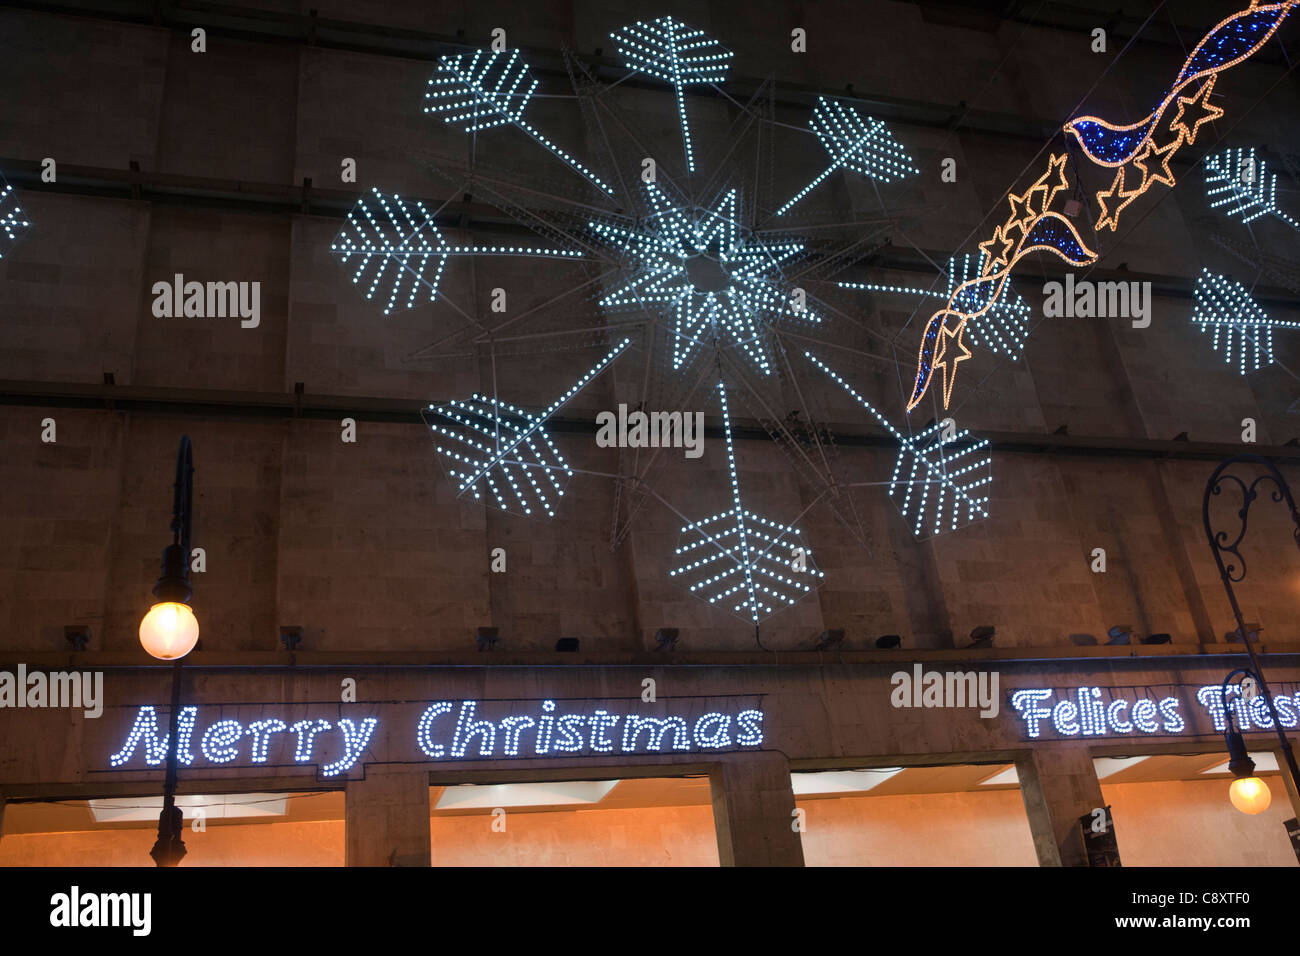 Merry Christmas decorative lights written - Stock Image